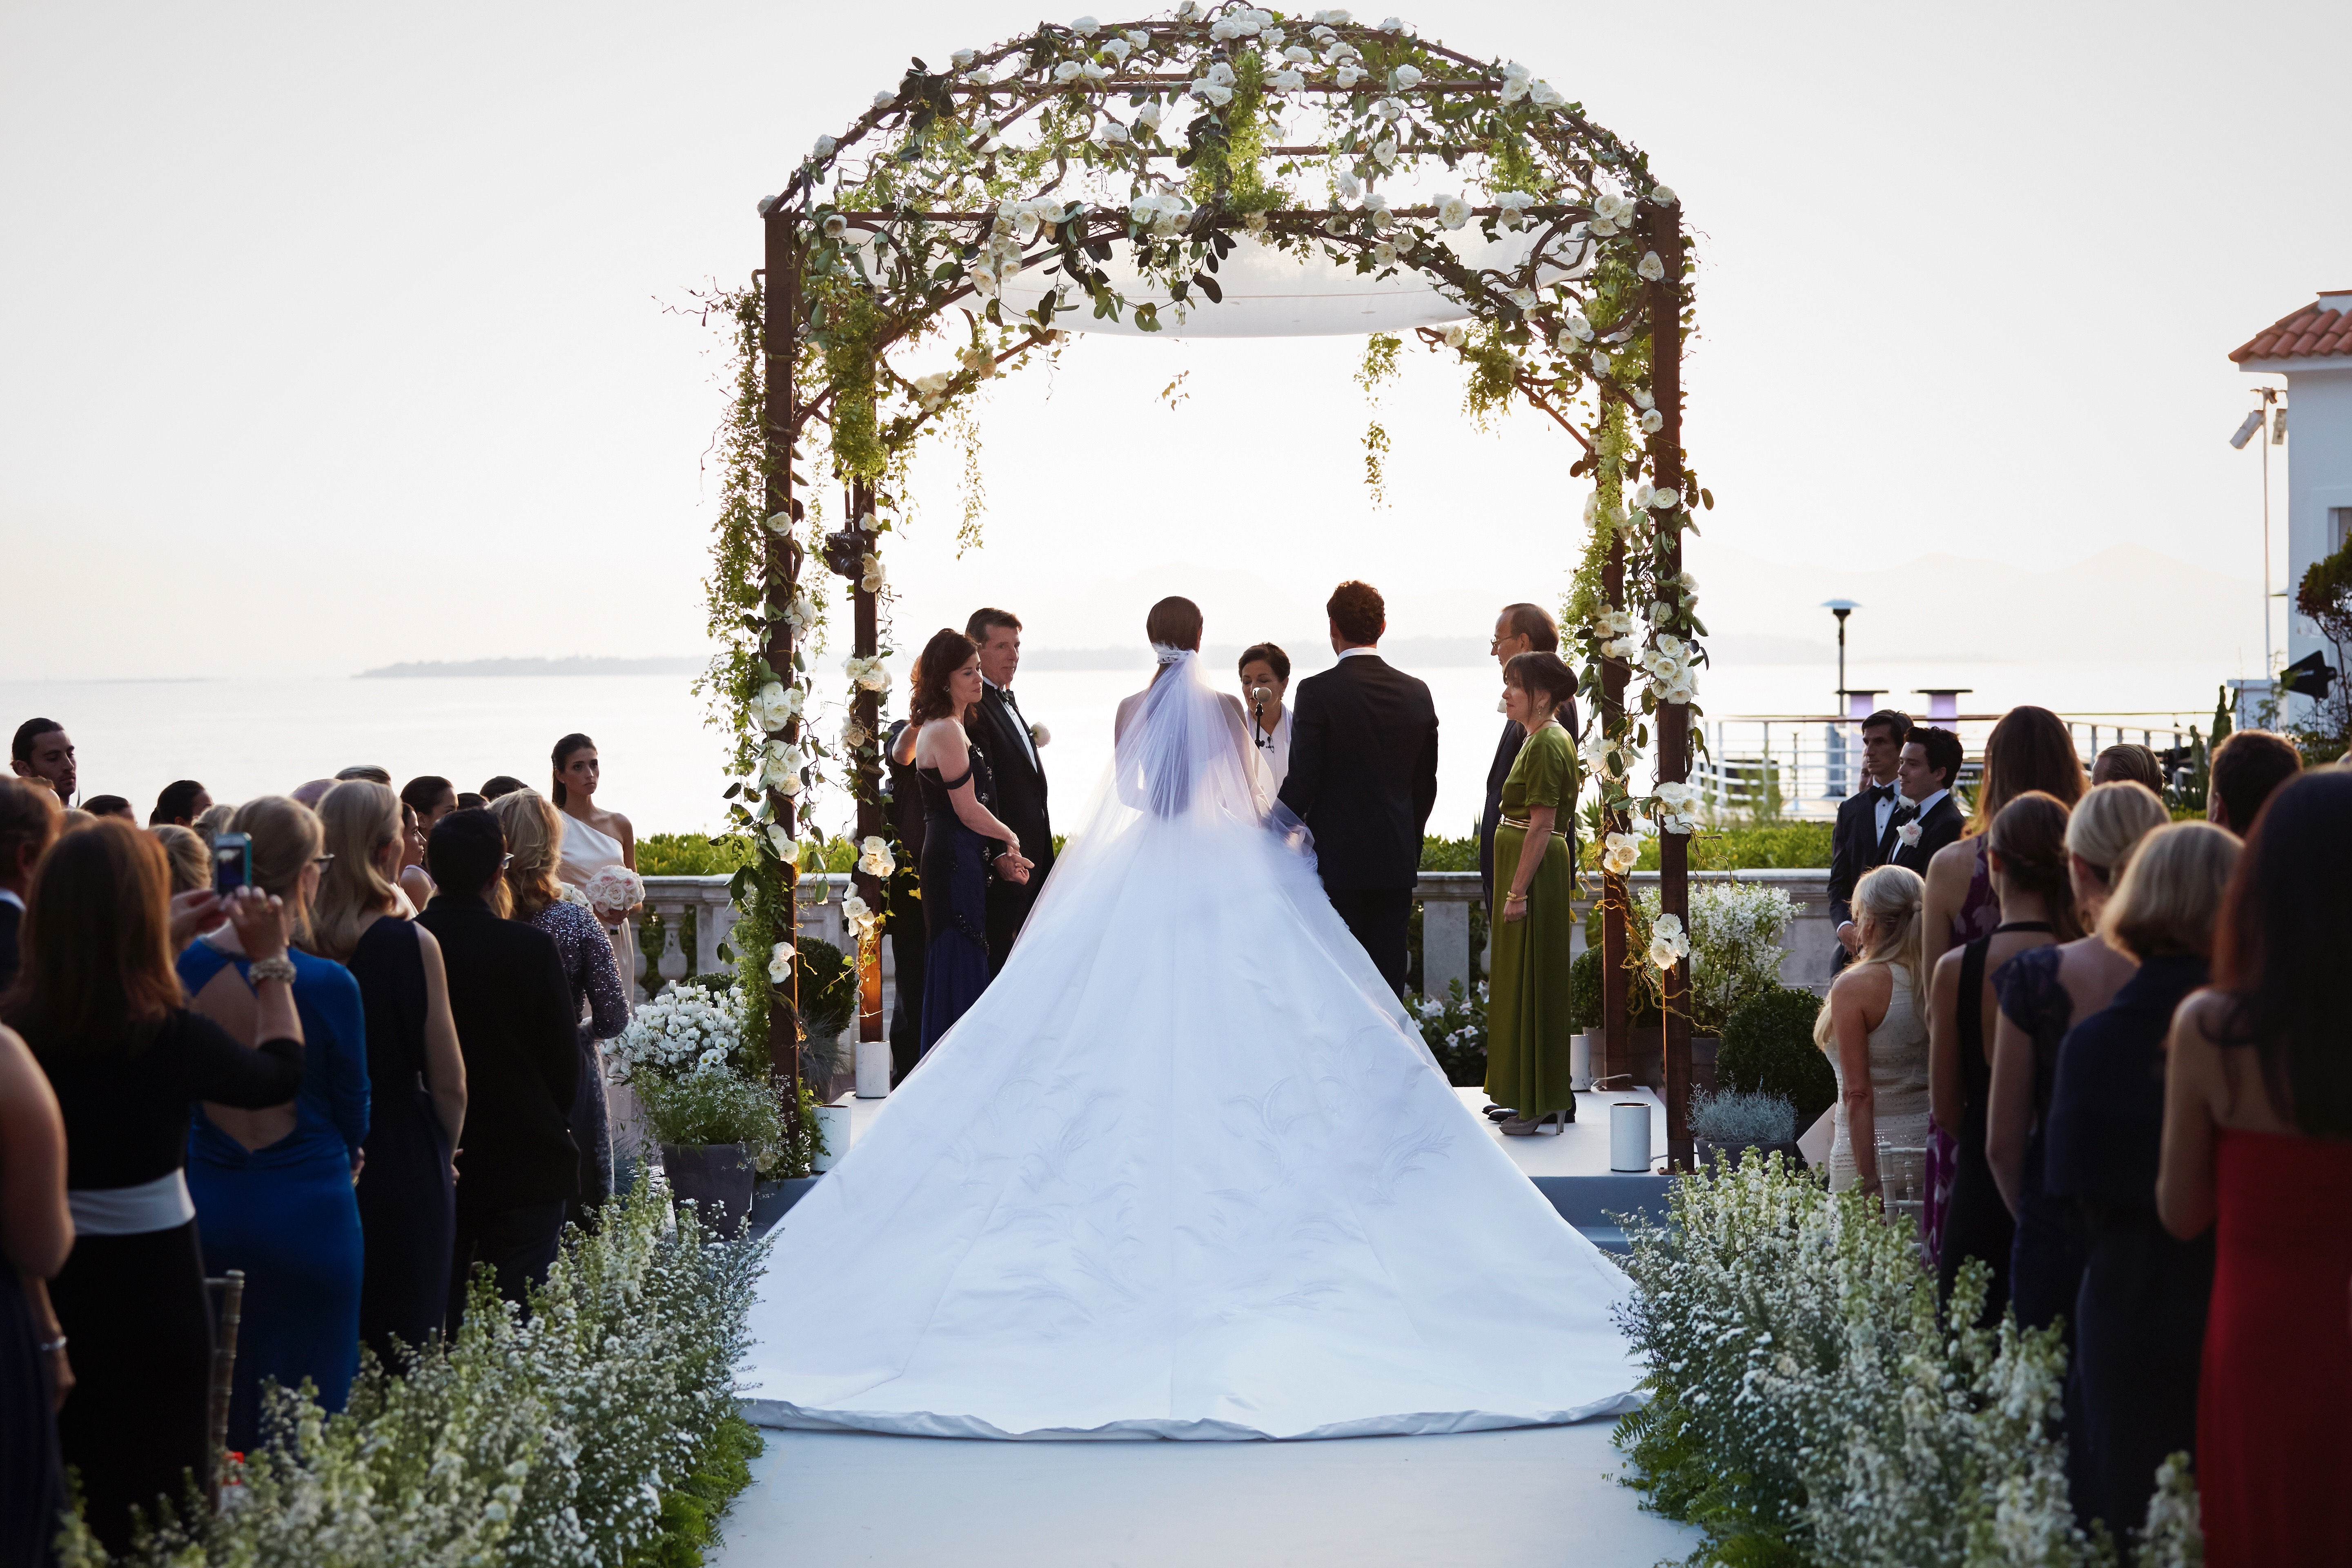 Nell and Teddy stand under the wedding huppah during the ceremony, which overlooks the Mediterranean